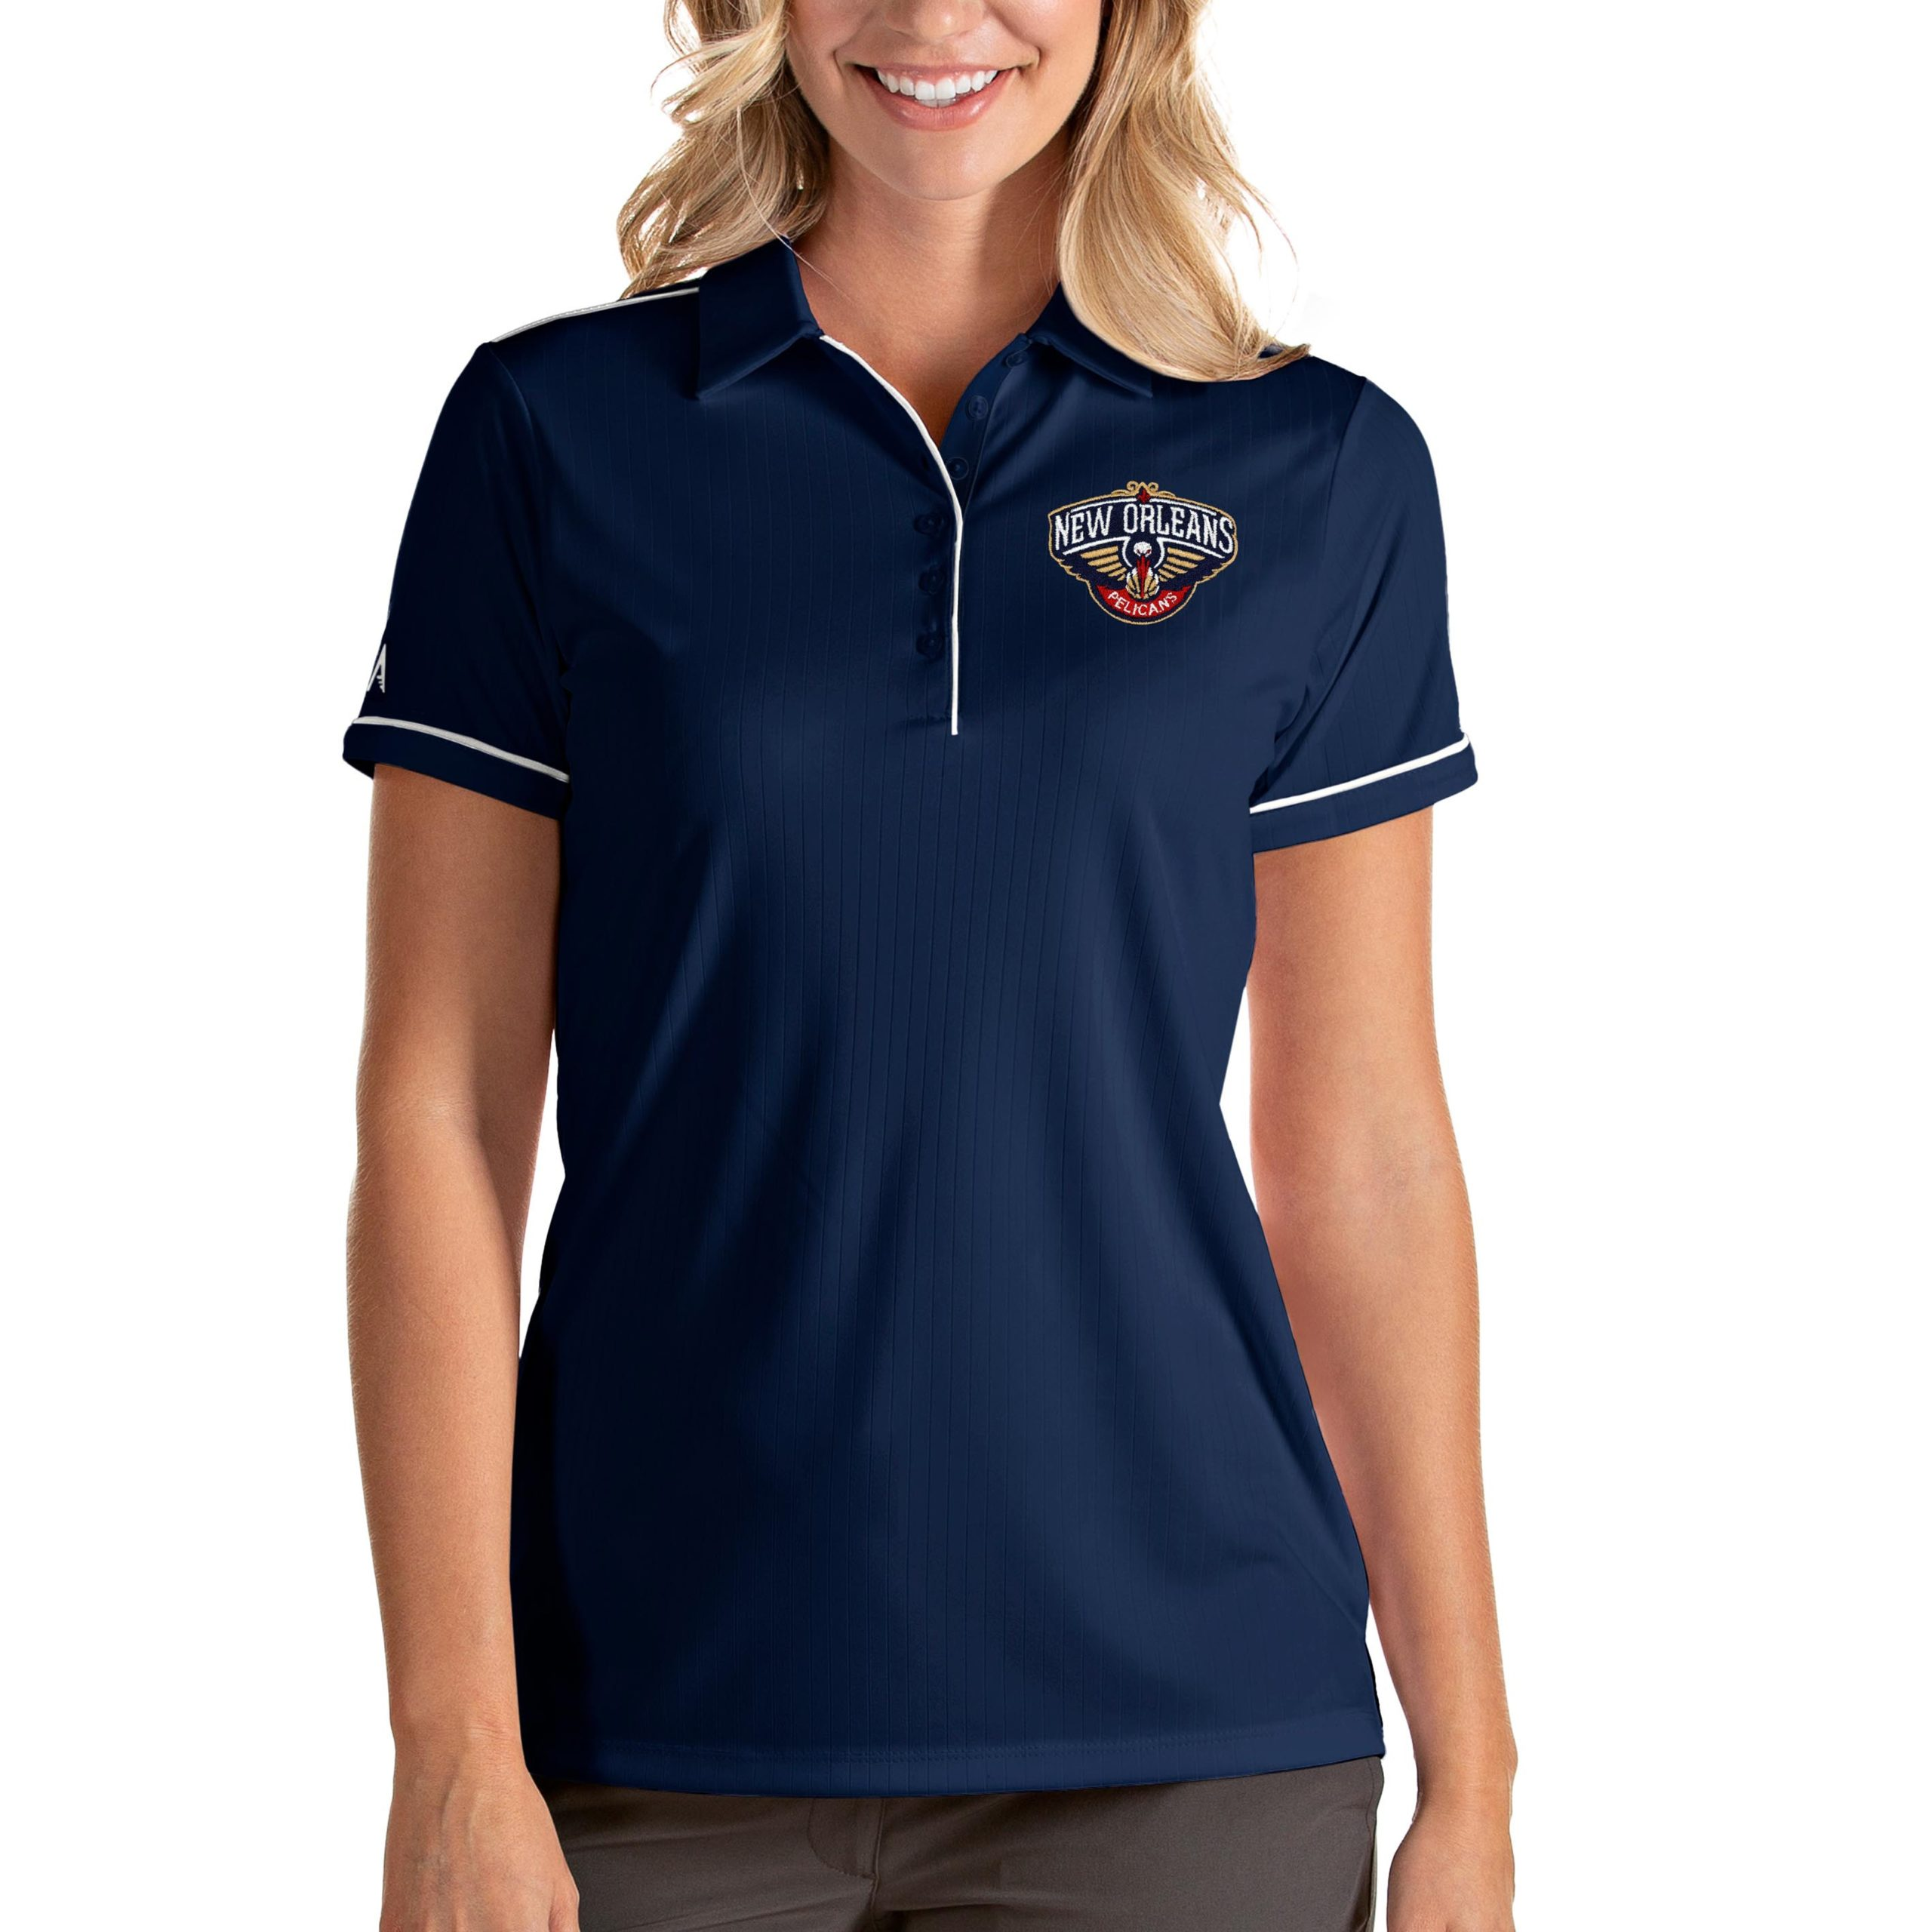 New Orleans Pelicans Antigua Women's Salute Polo - Navy/White